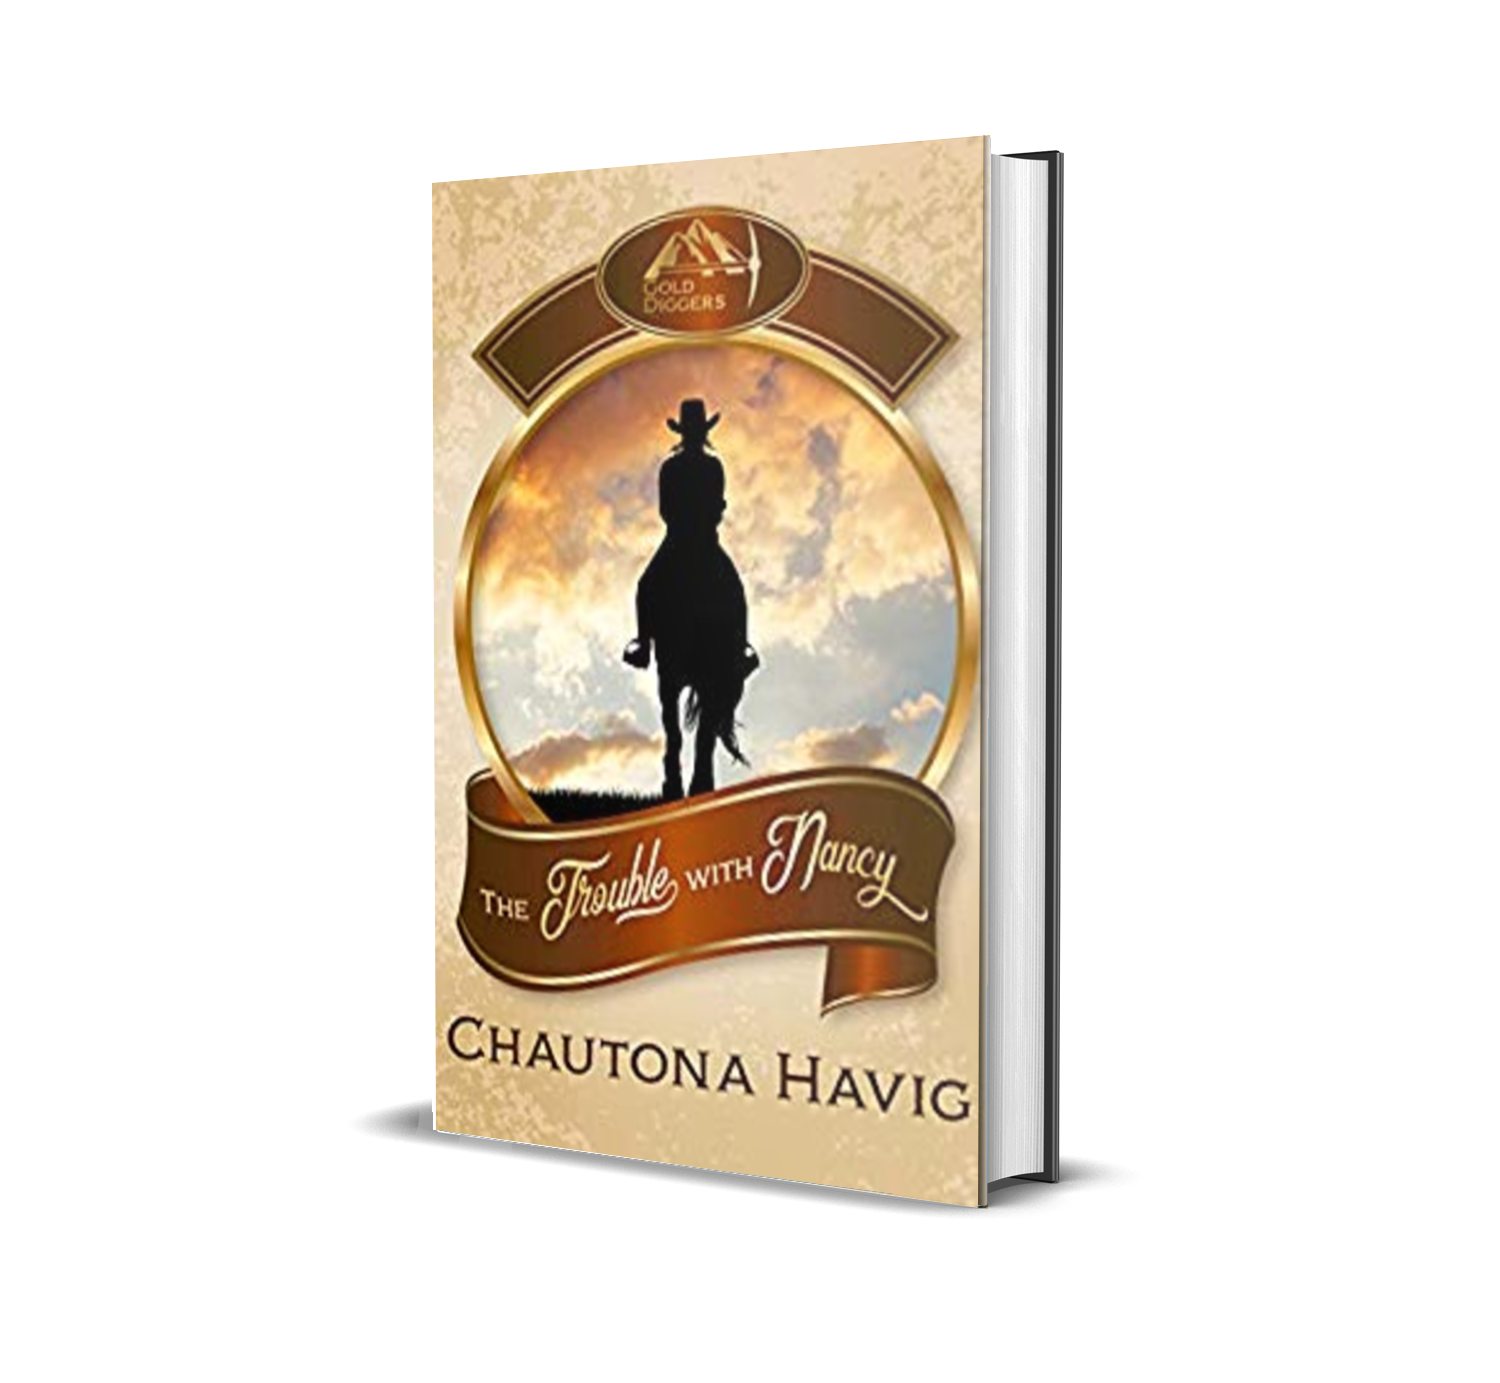 The Trouble with Nancy by Chautona Havig